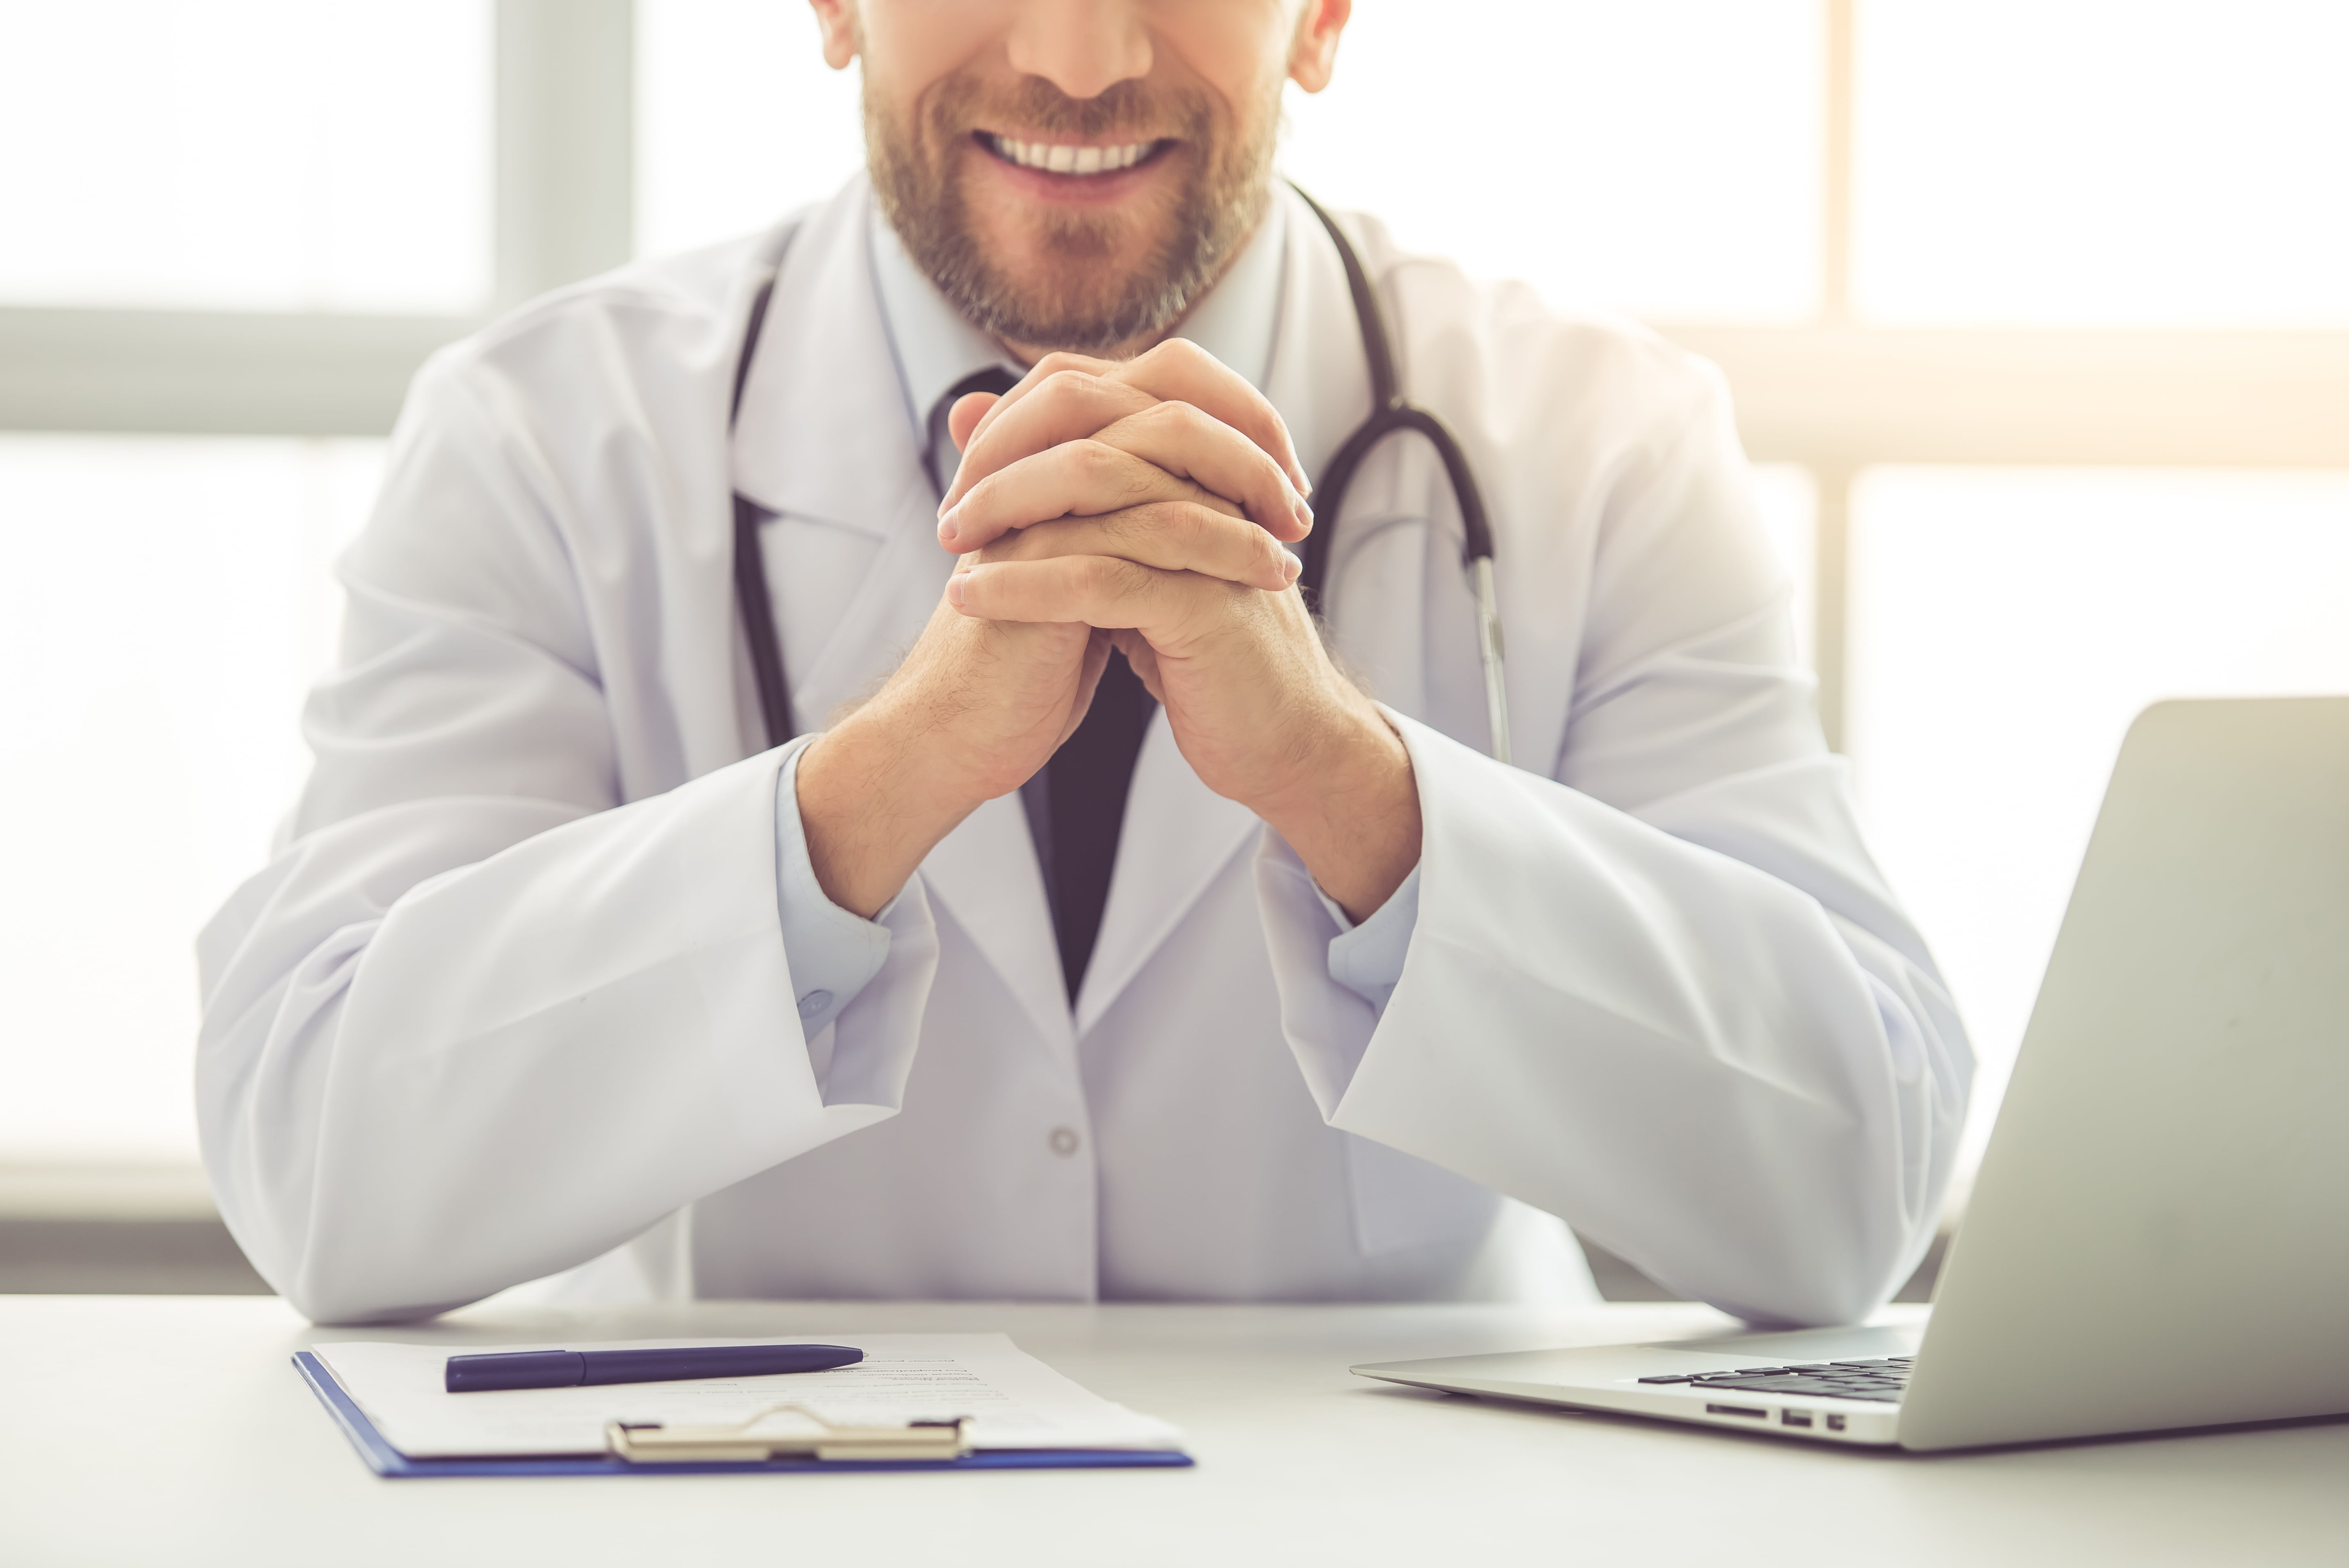 Is Remote Patient Monitoring Considered Telehealth?